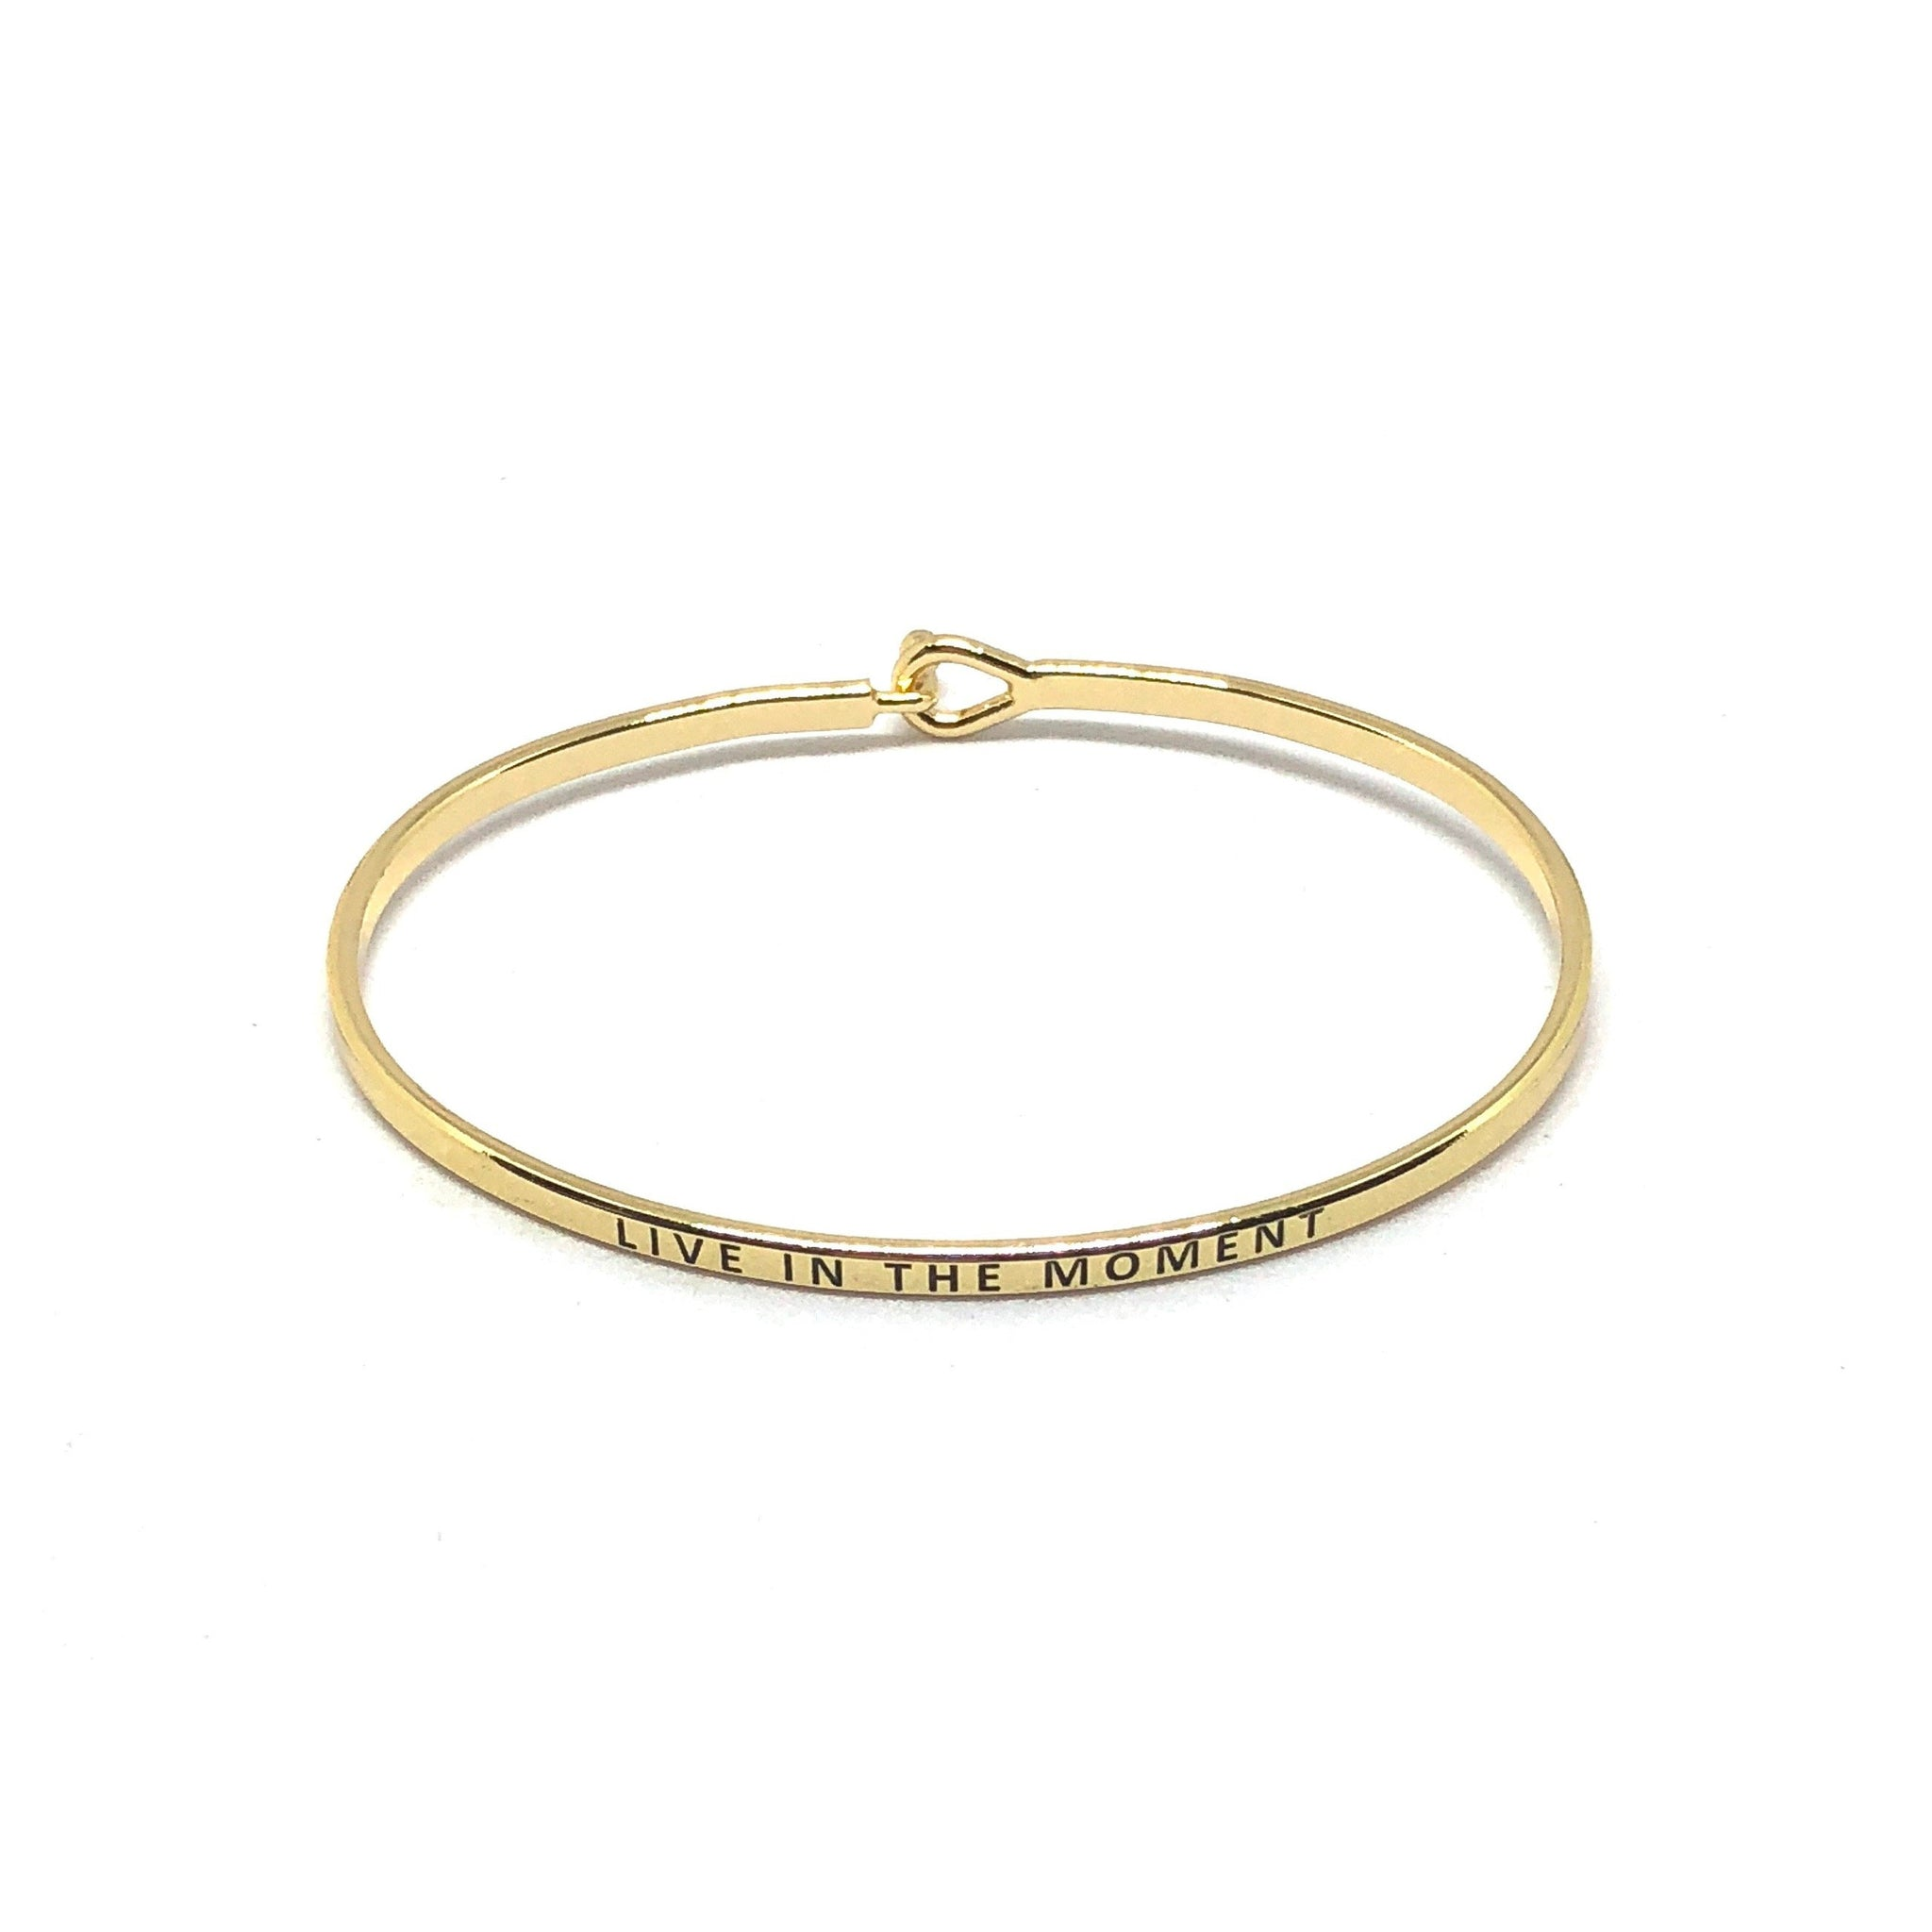 Live In The Moment Inspirational Bangle - SPREE